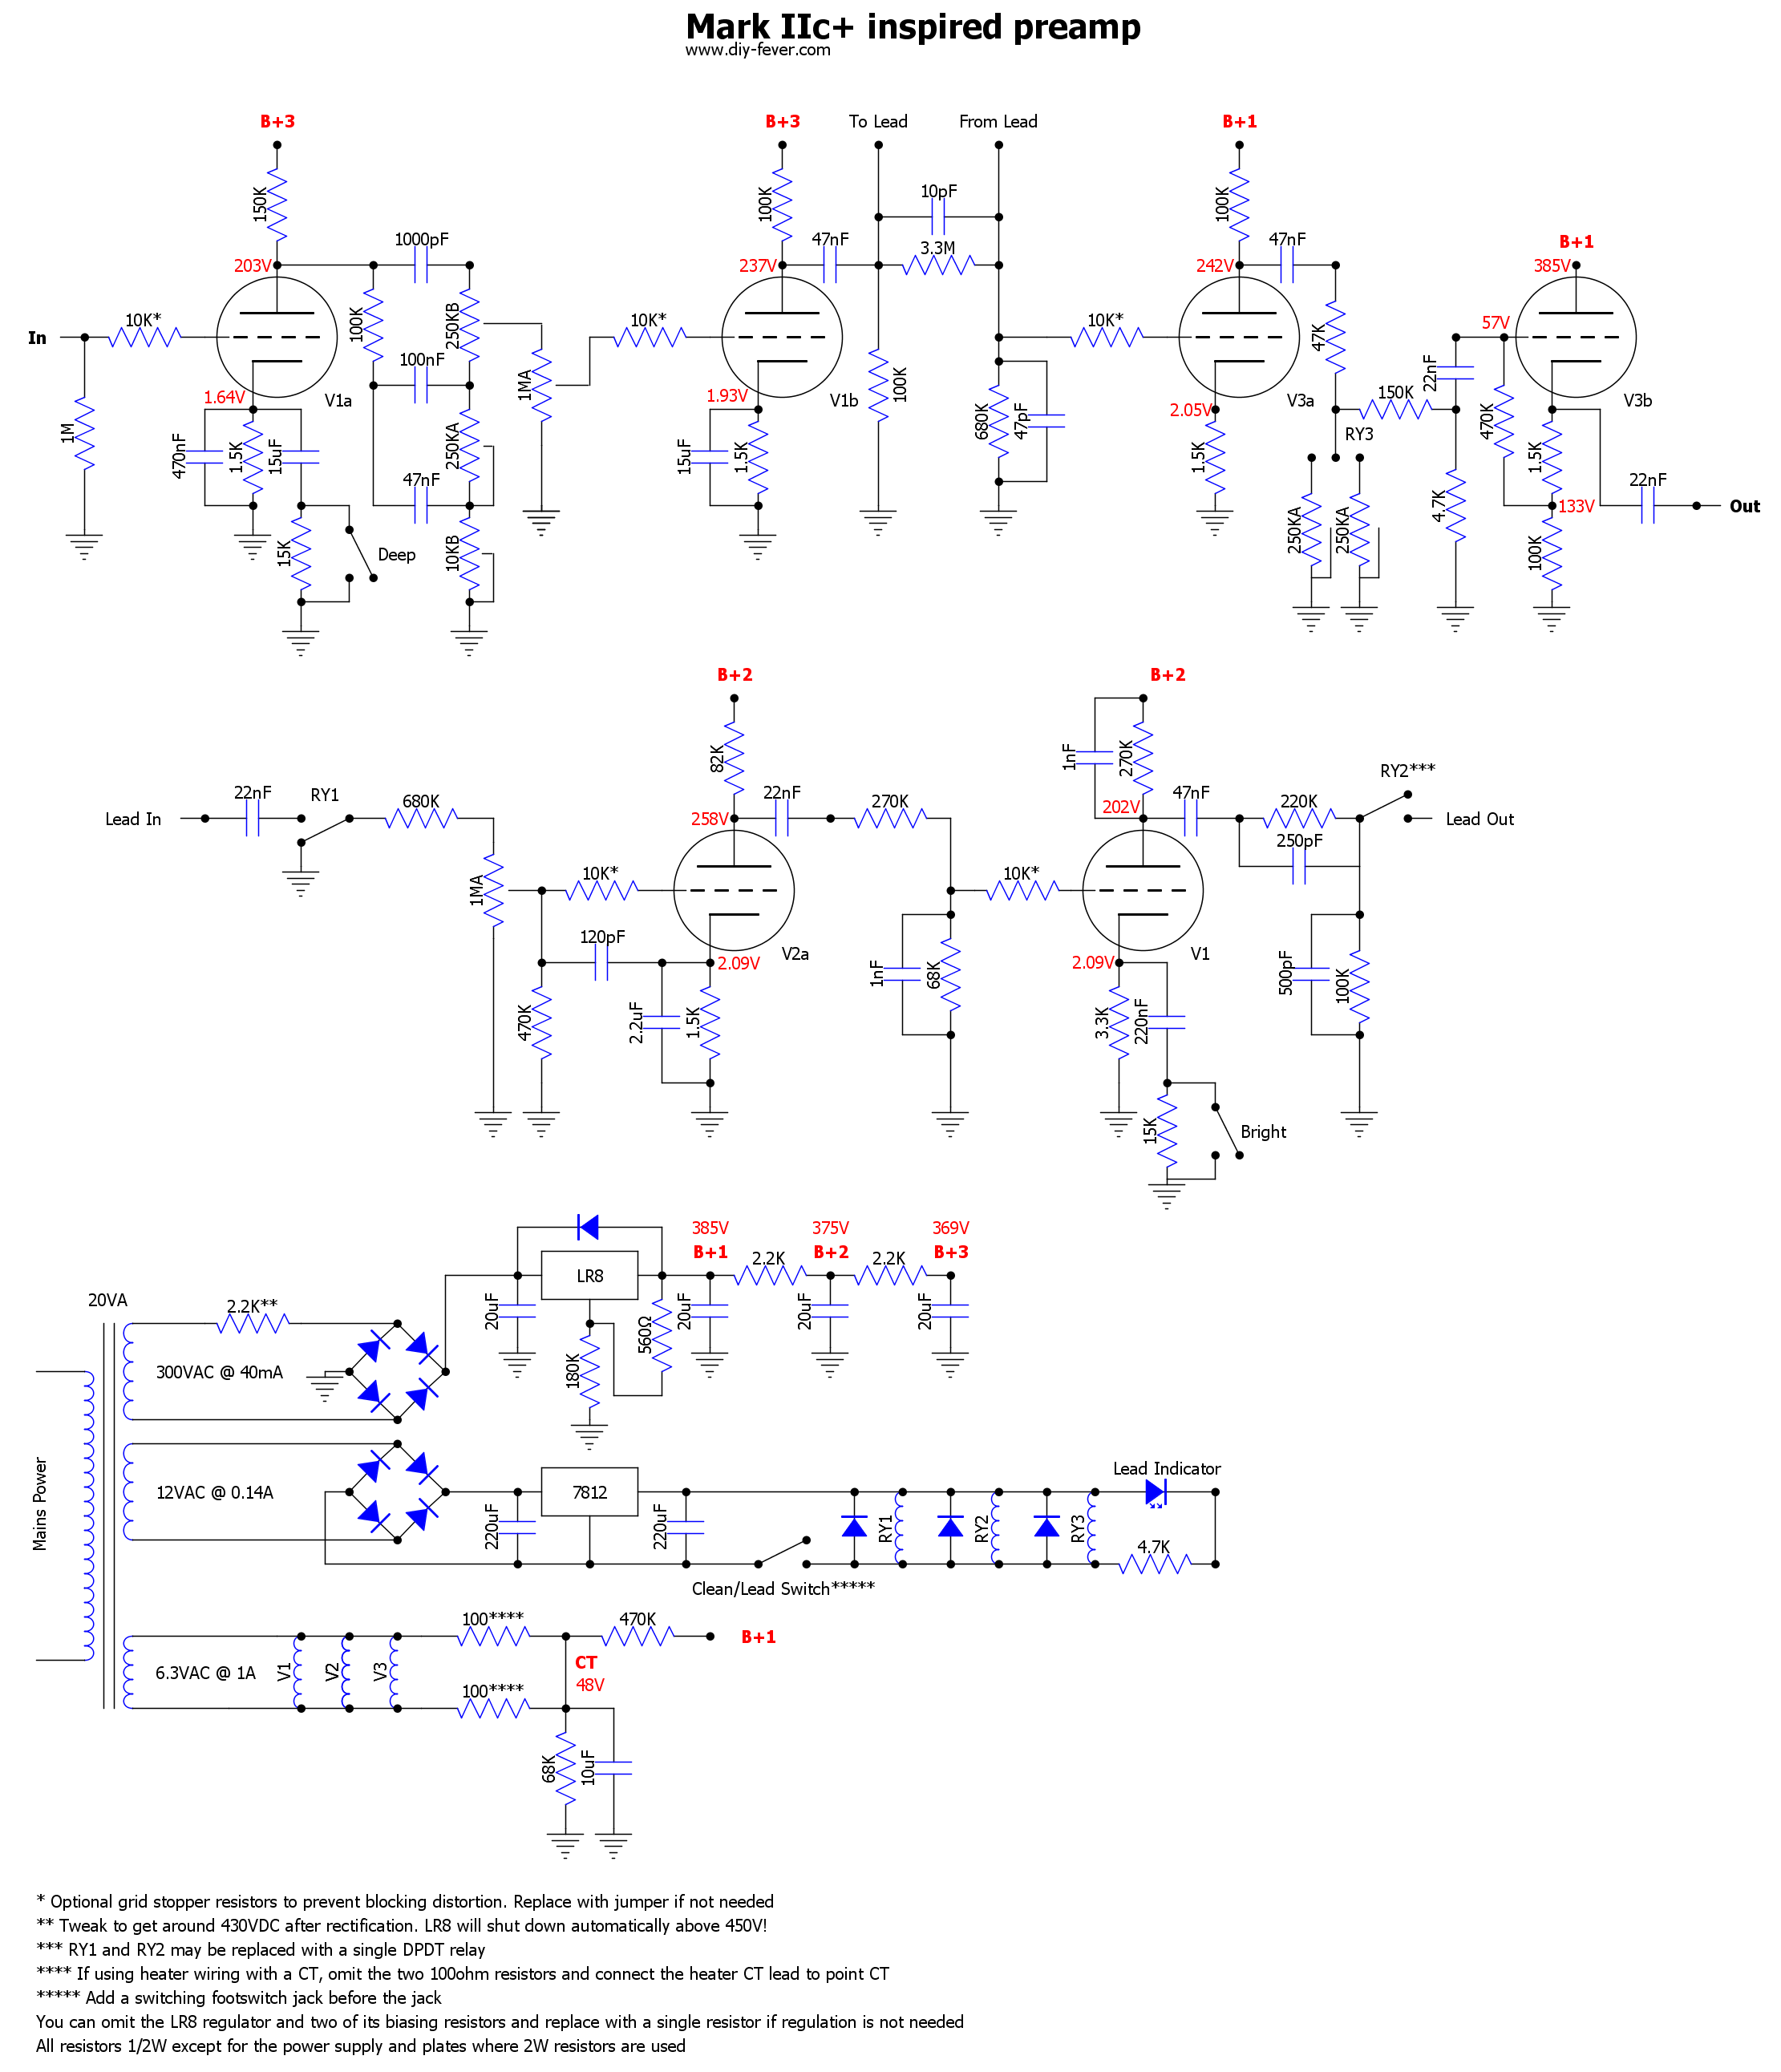 Mesa Mark Iic Pre Pcb Diy Fever Circuits Gt Making A Homemade Power Amplifier Layout Included Schematic